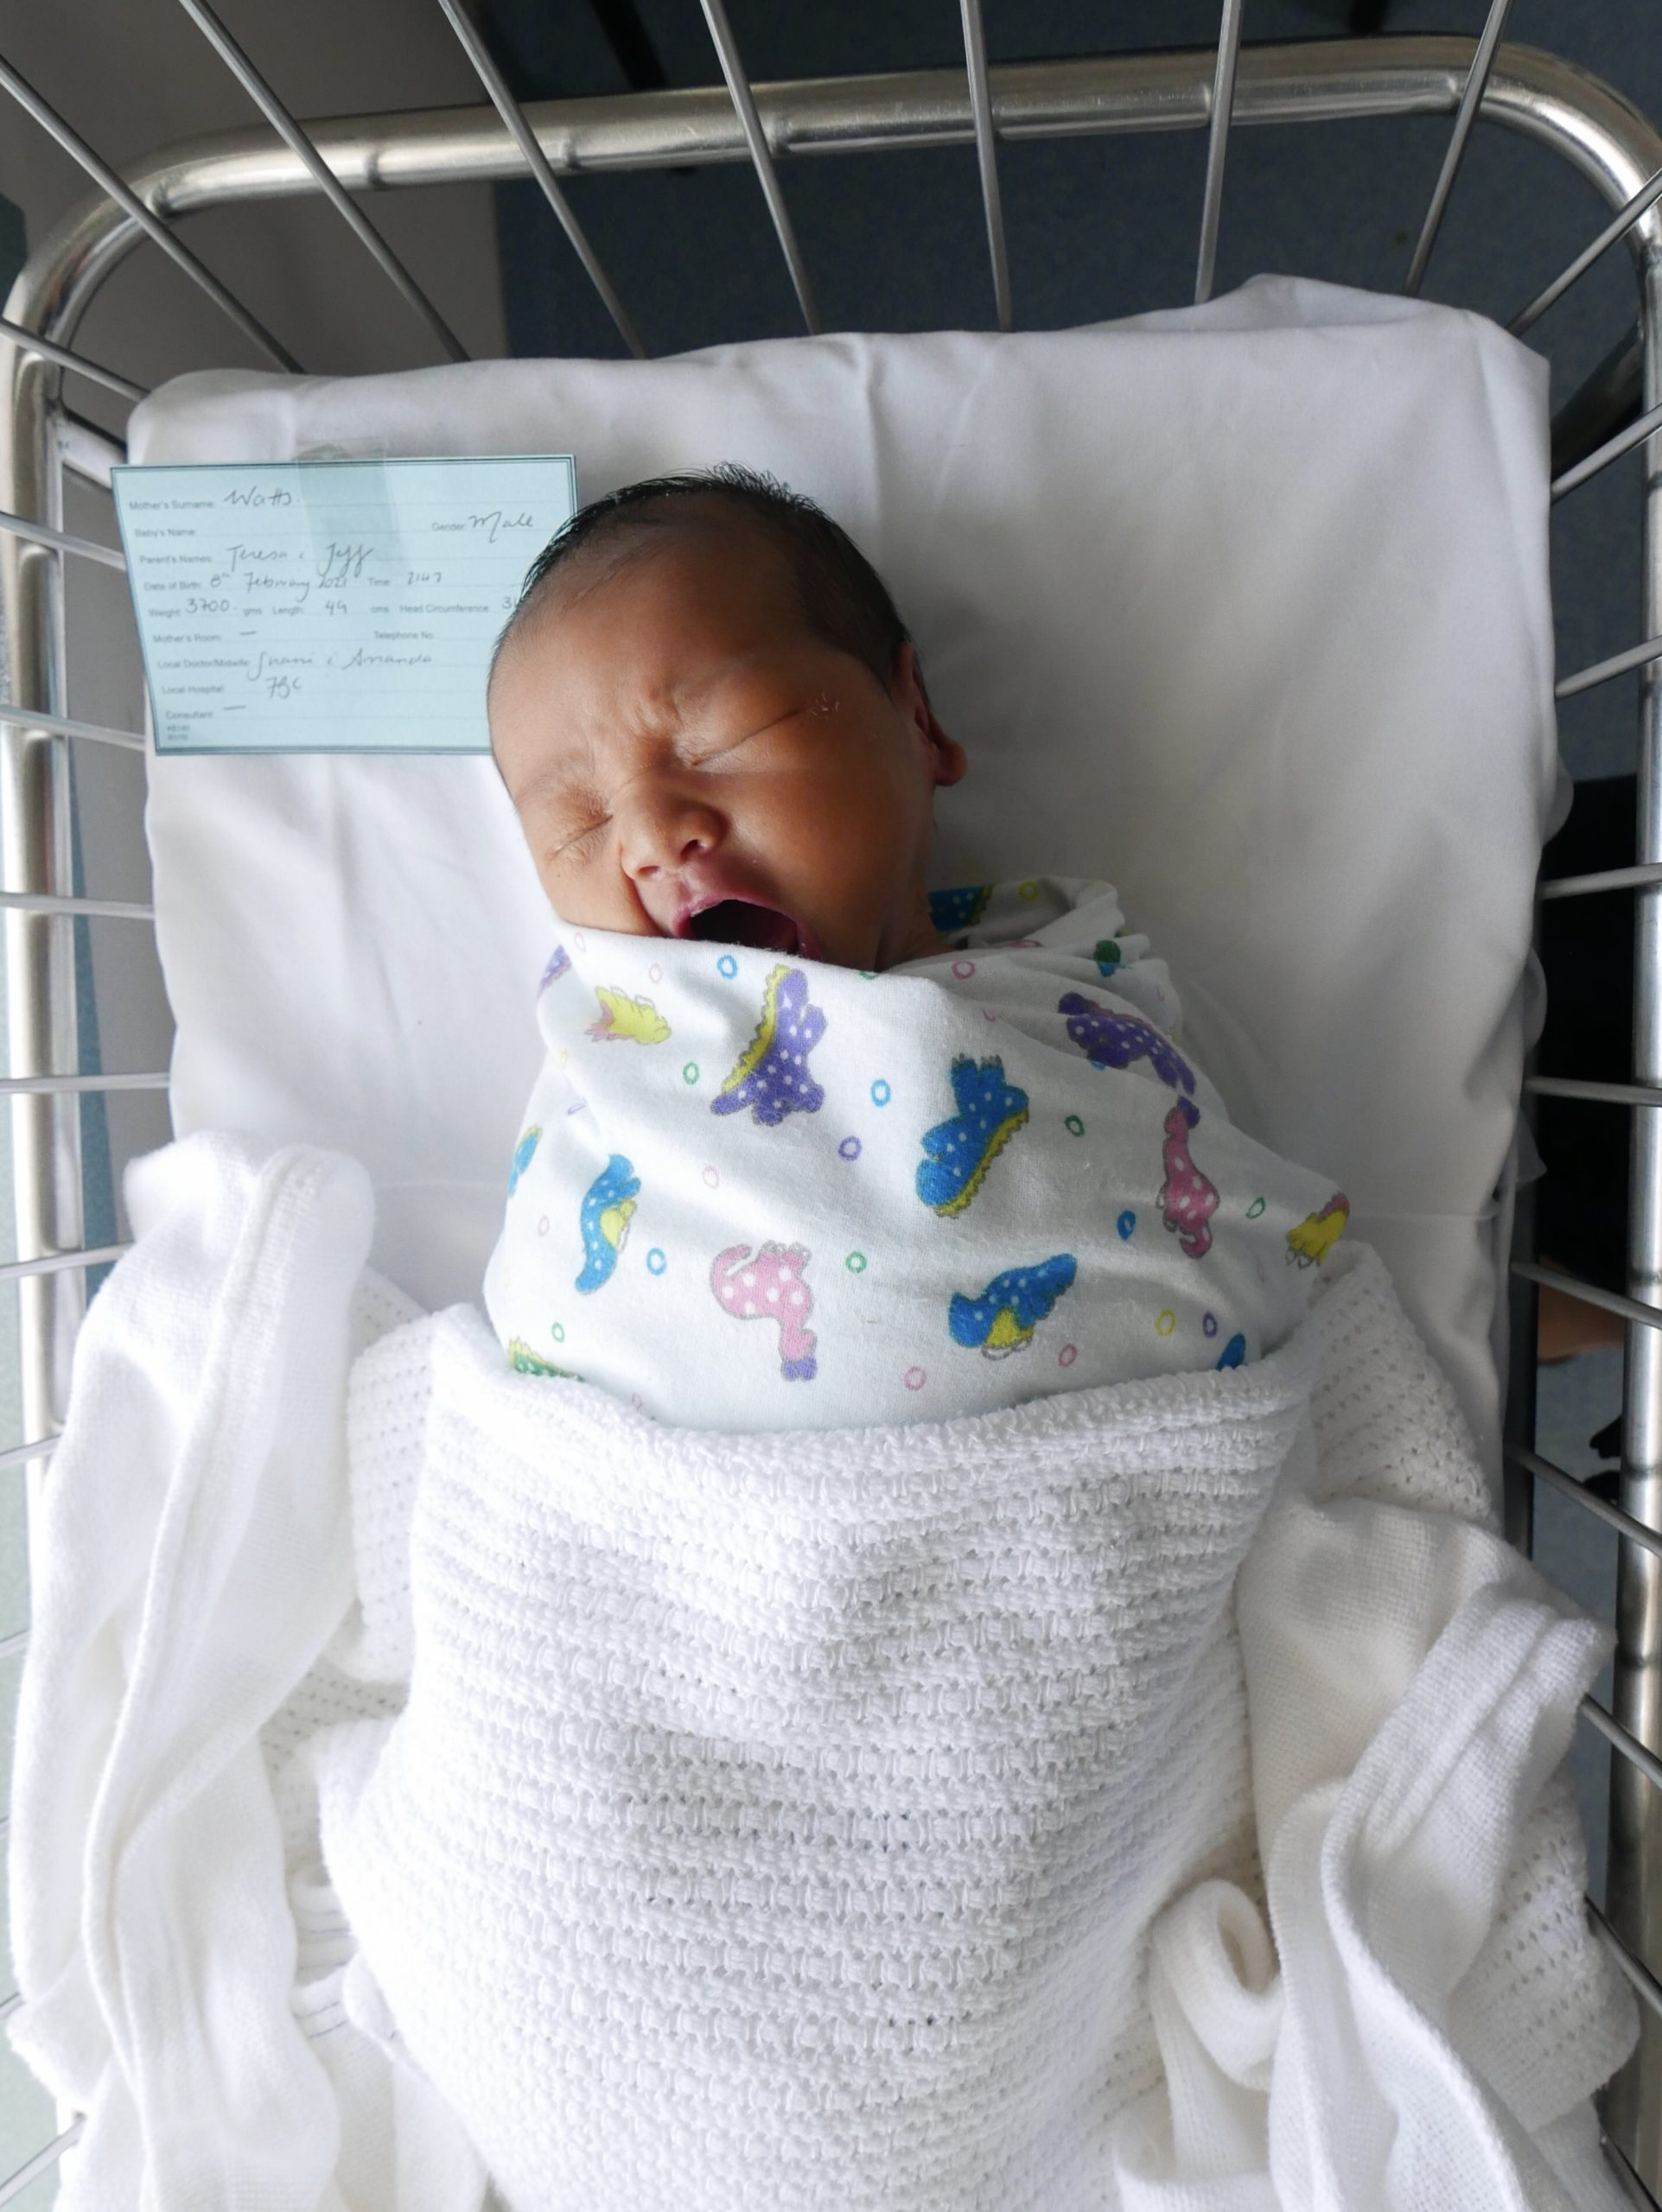 Yawning baby in a hospital bassinet